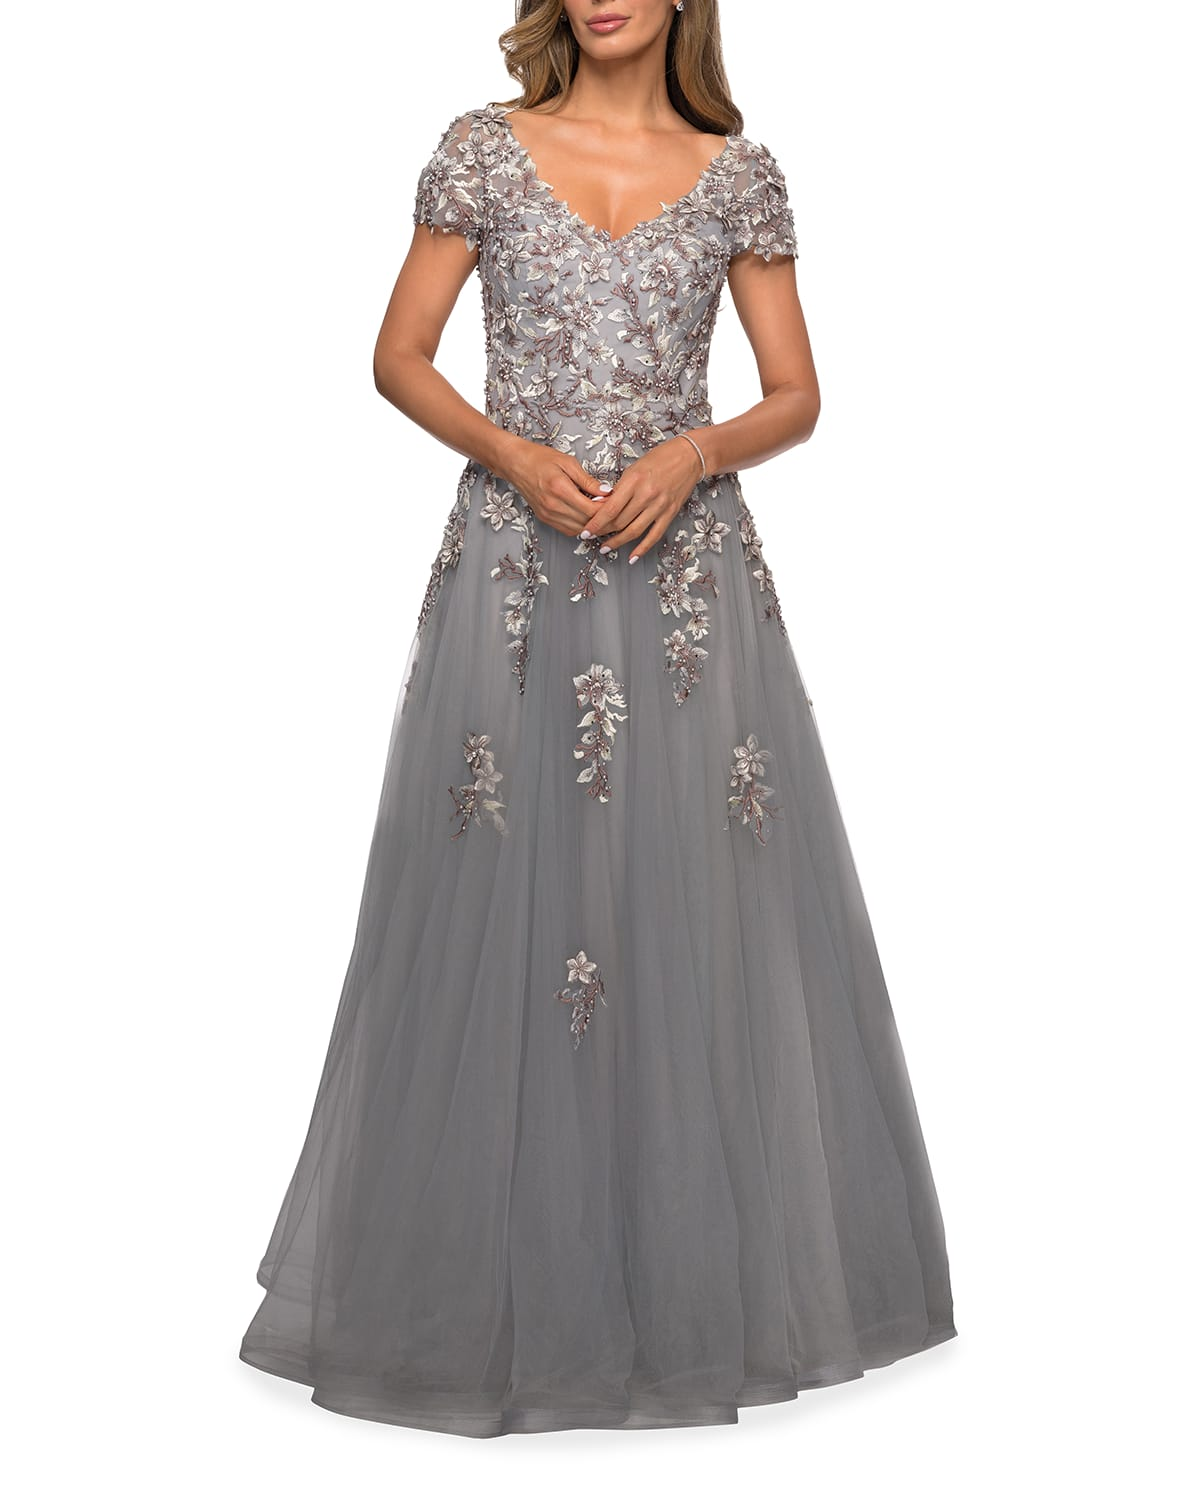 Beaded Lace Applique Tulle A-Line Gown